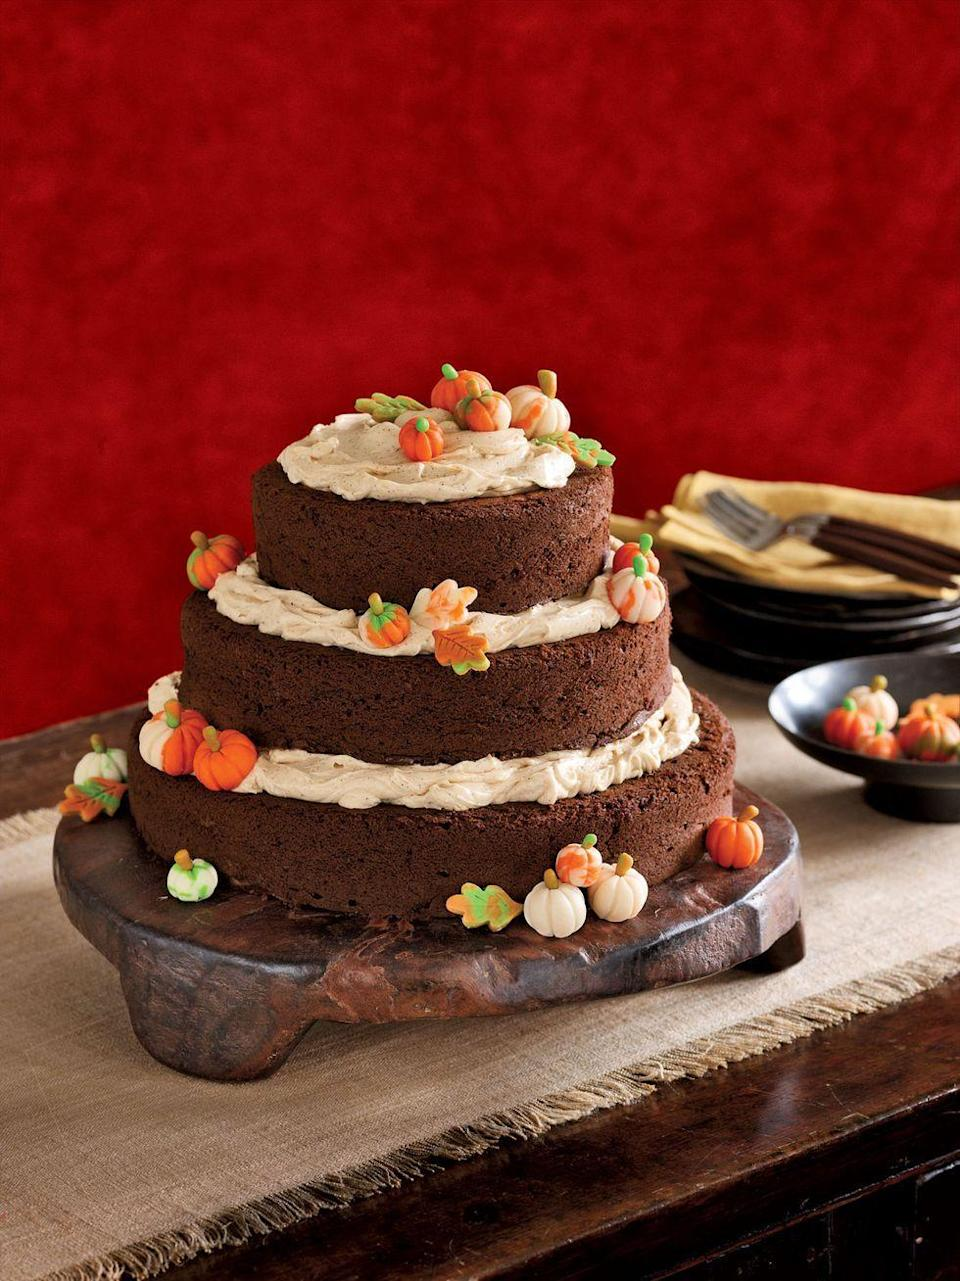 "<p>Watch out pie– this pumpkin cake with layers of pumpkin-cream cheese frosting might just steal the show at this year's Thanksgiving.</p><p><em><a href=""https://www.countryliving.com/food-drinks/recipes/a1443/pumpkin-spice-cake-3559/"" rel=""nofollow noopener"" target=""_blank"" data-ylk=""slk:Get the recipe from Country Living »"" class=""link rapid-noclick-resp"">Get the recipe from Country Living »</a></em></p>"